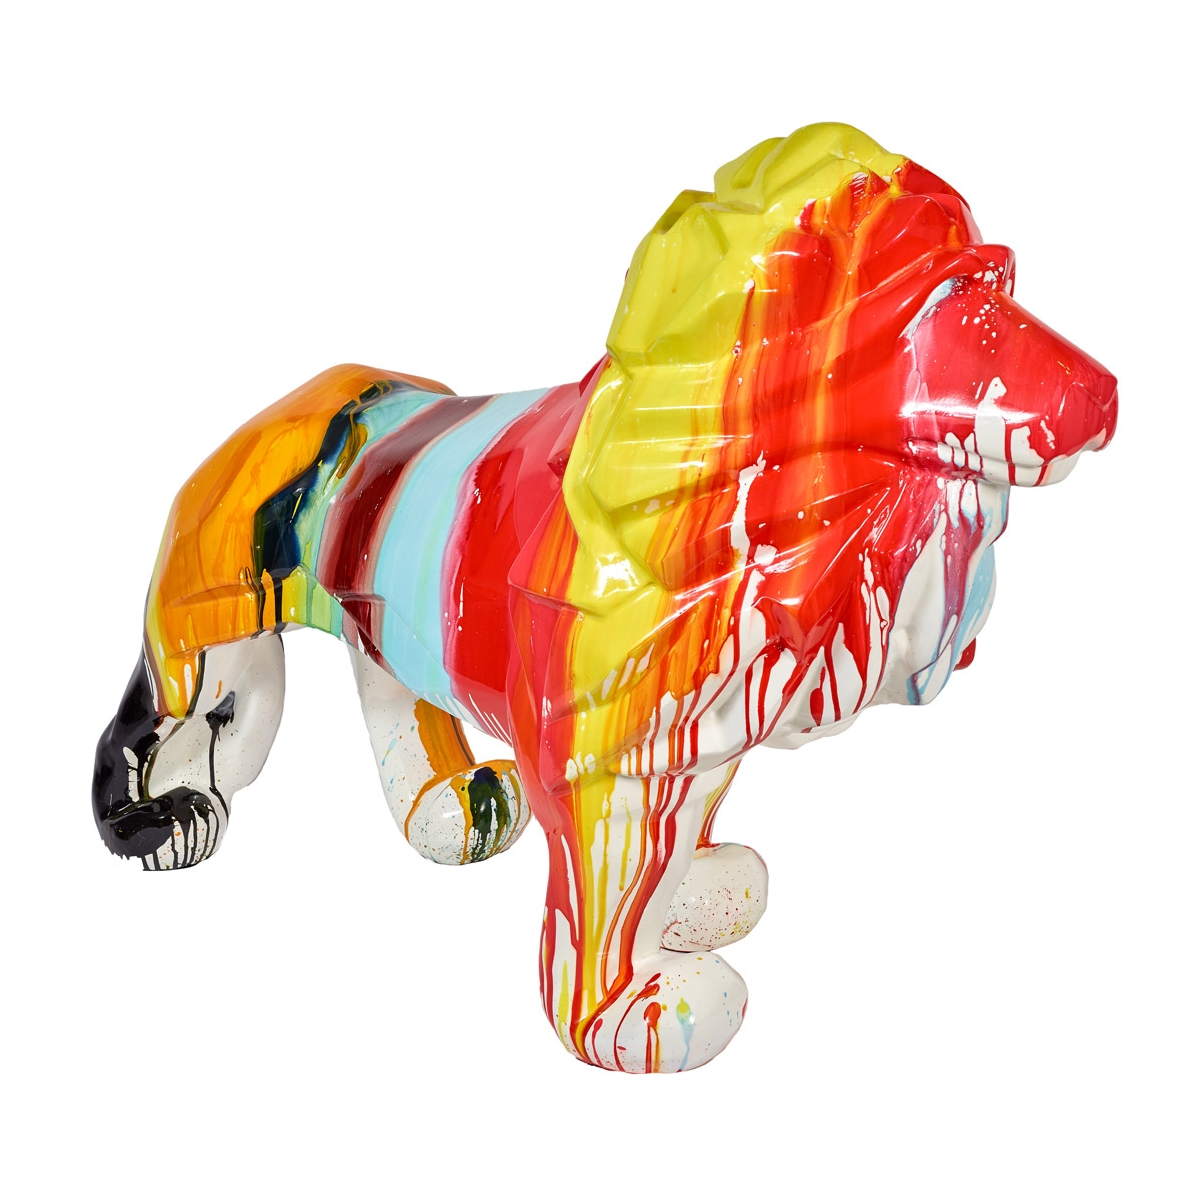 Statue lion design zendart design s lection zendart design for Deco et interieur